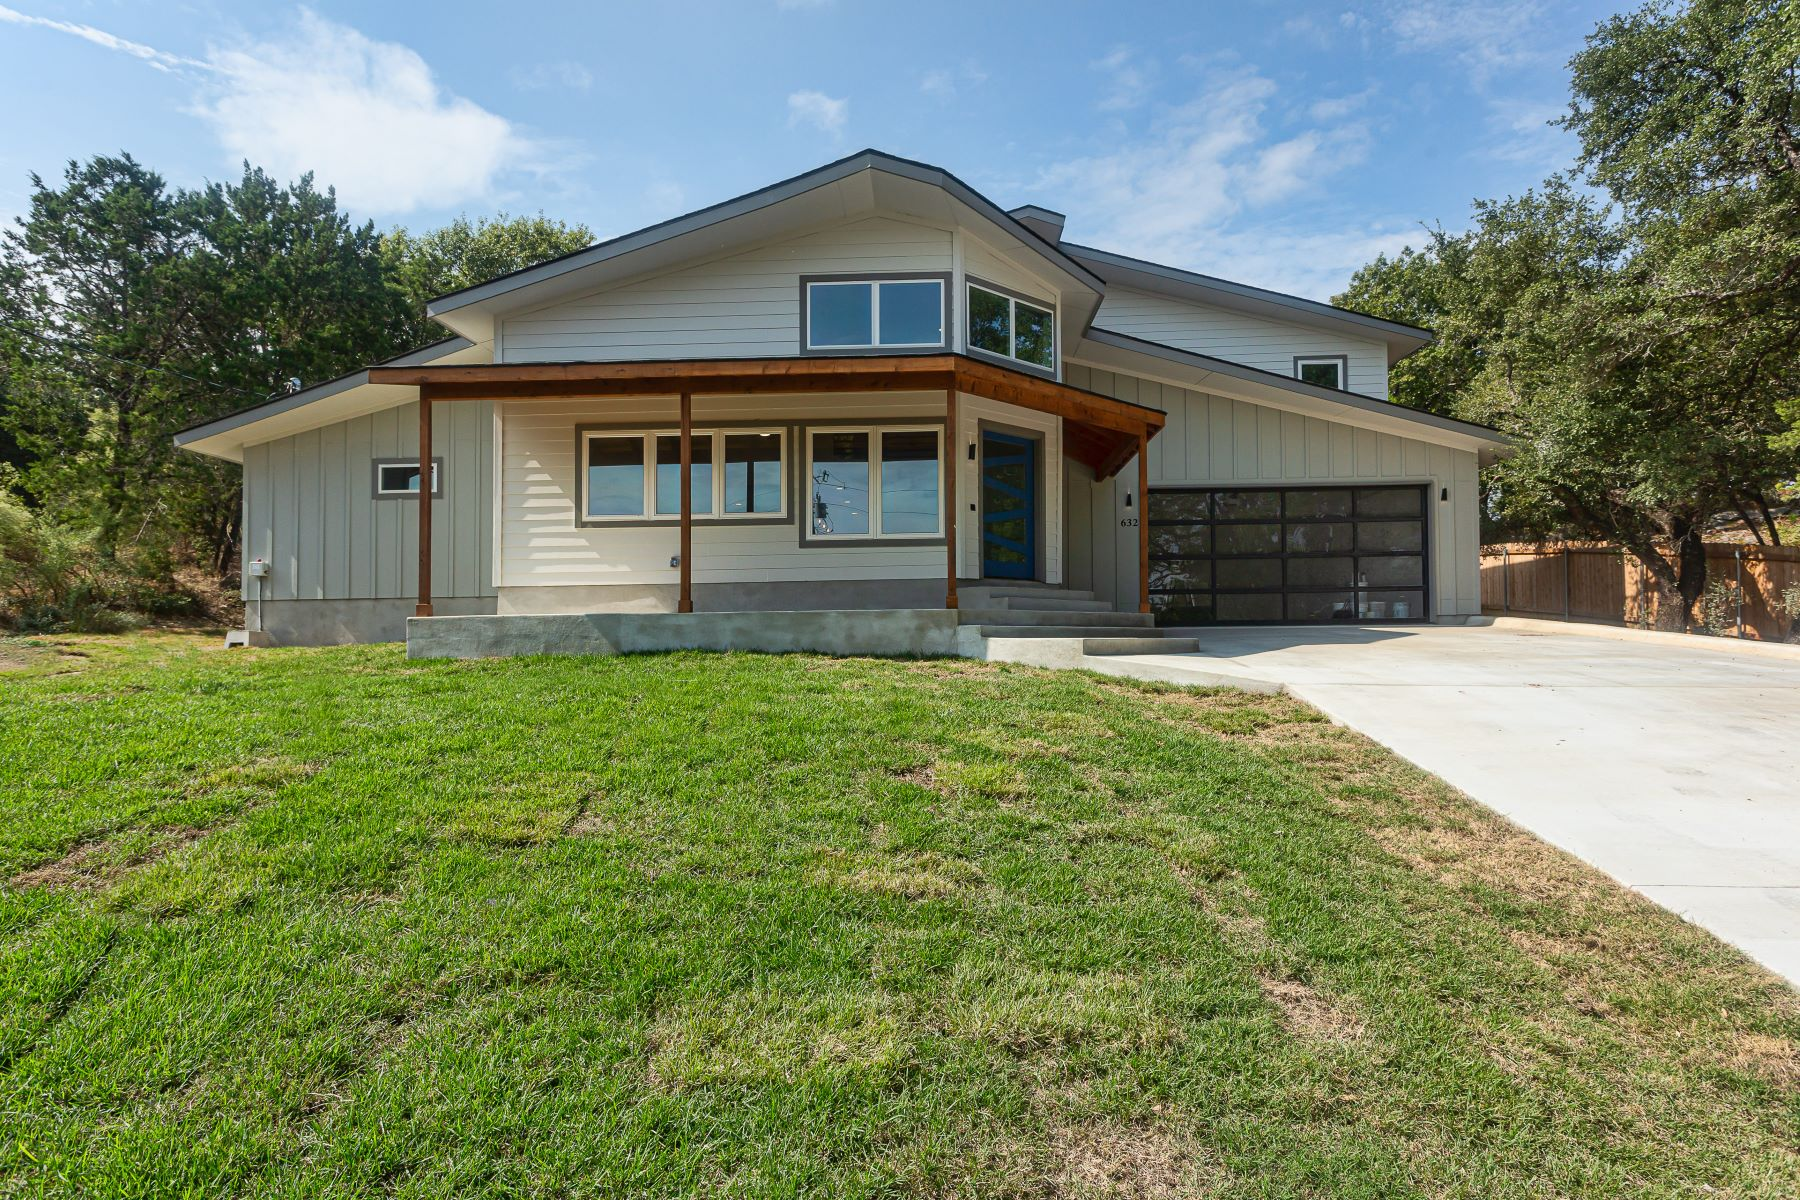 Single Family Homes for Sale at 632 Galston, Briarcliff, TX 78669 632 Galston Drive Briarcliff, Texas 78669 United States